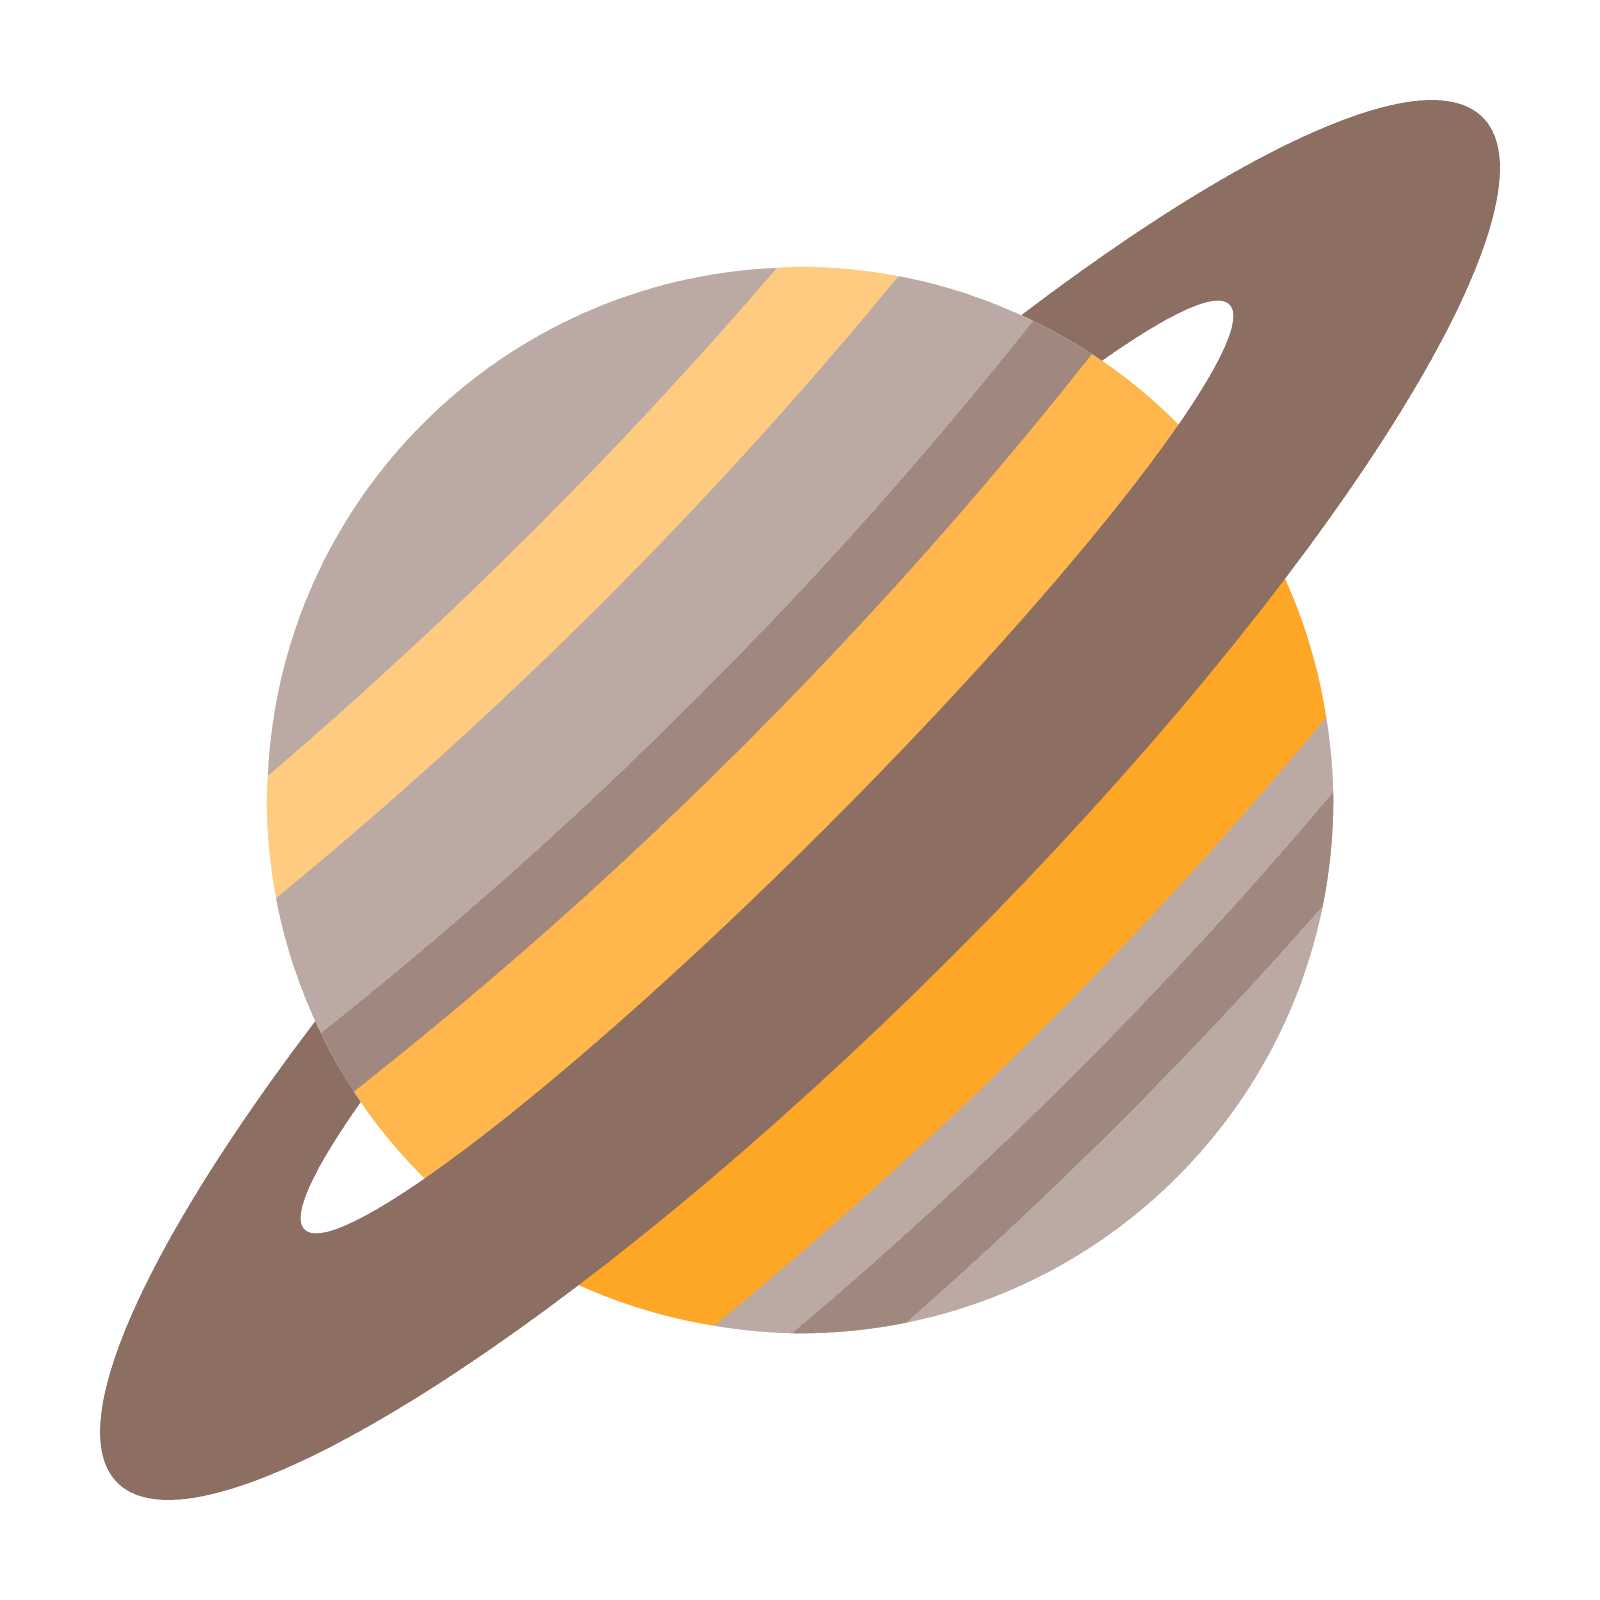 Transparent saturn color. Planet icon free download